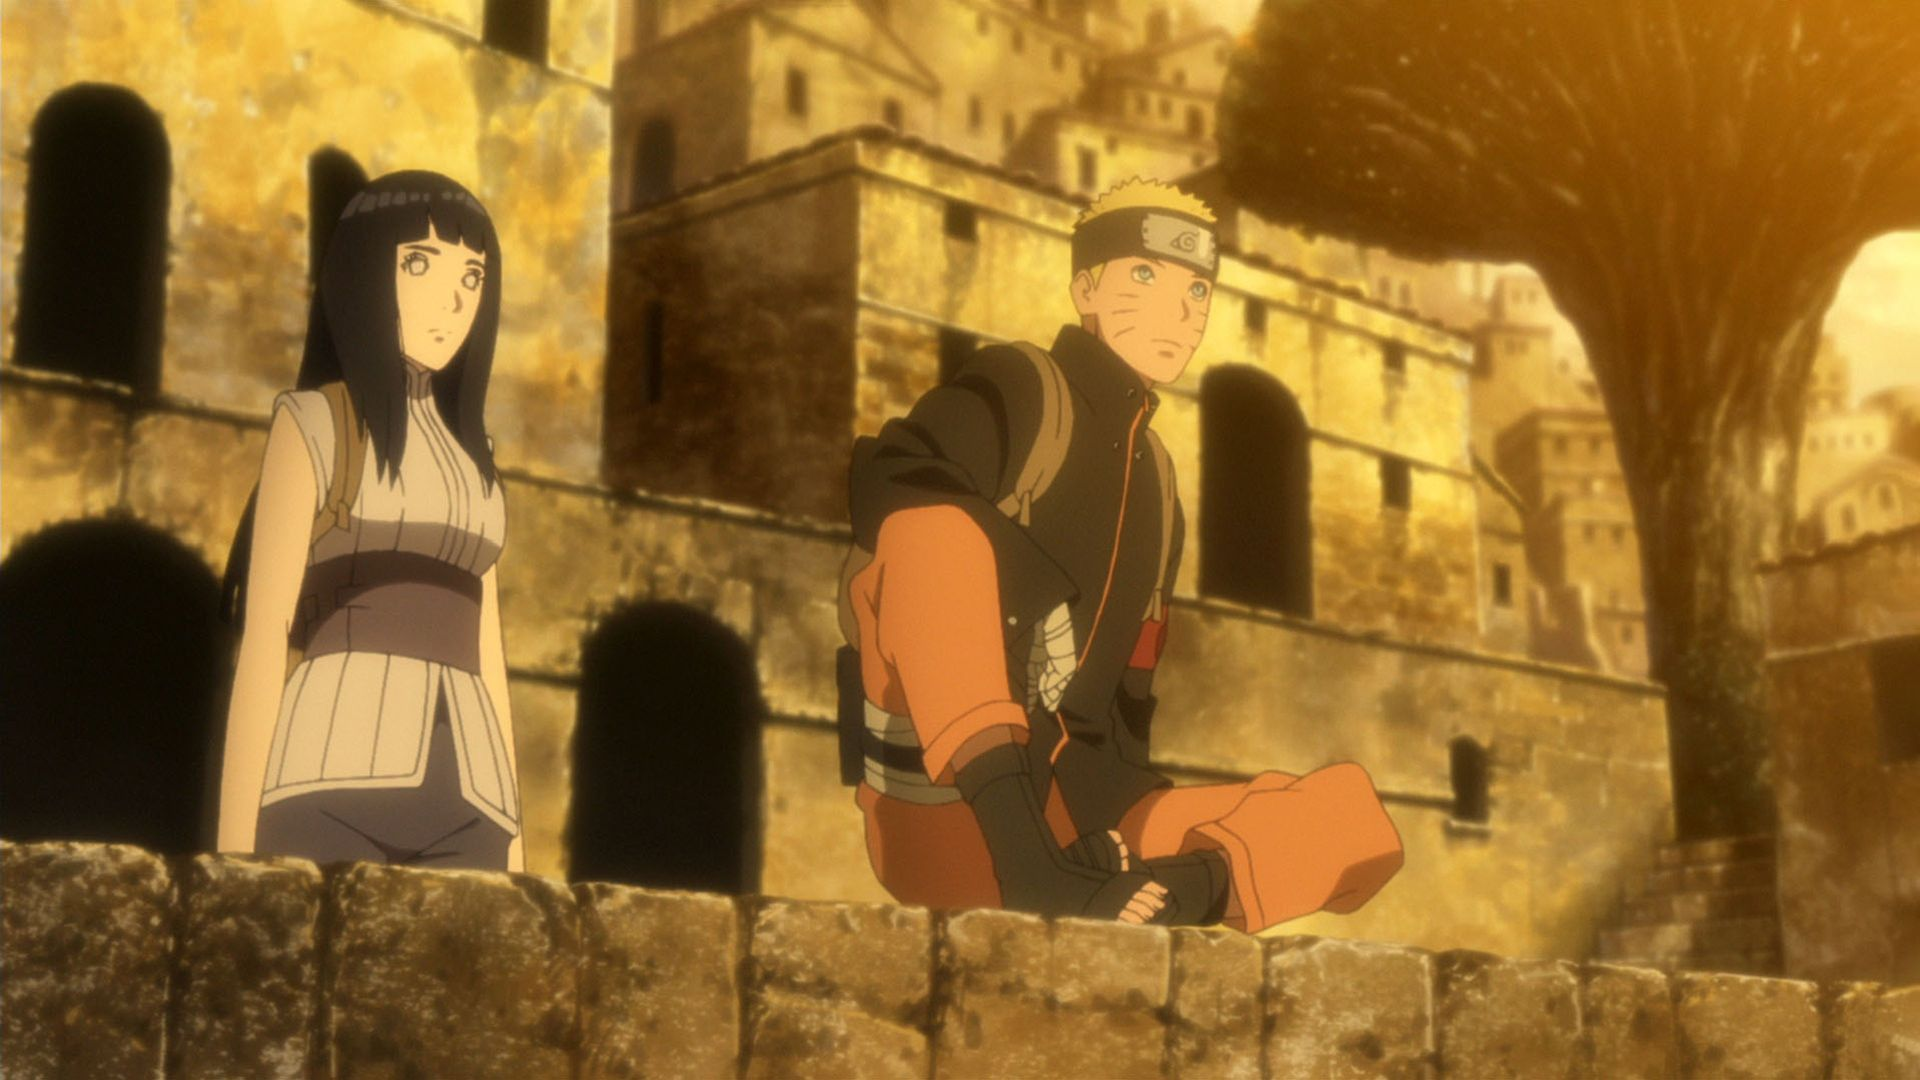 The Last Naruto The Movie 2014 Watch On Crunchyroll Or Streaming Online Reelgood